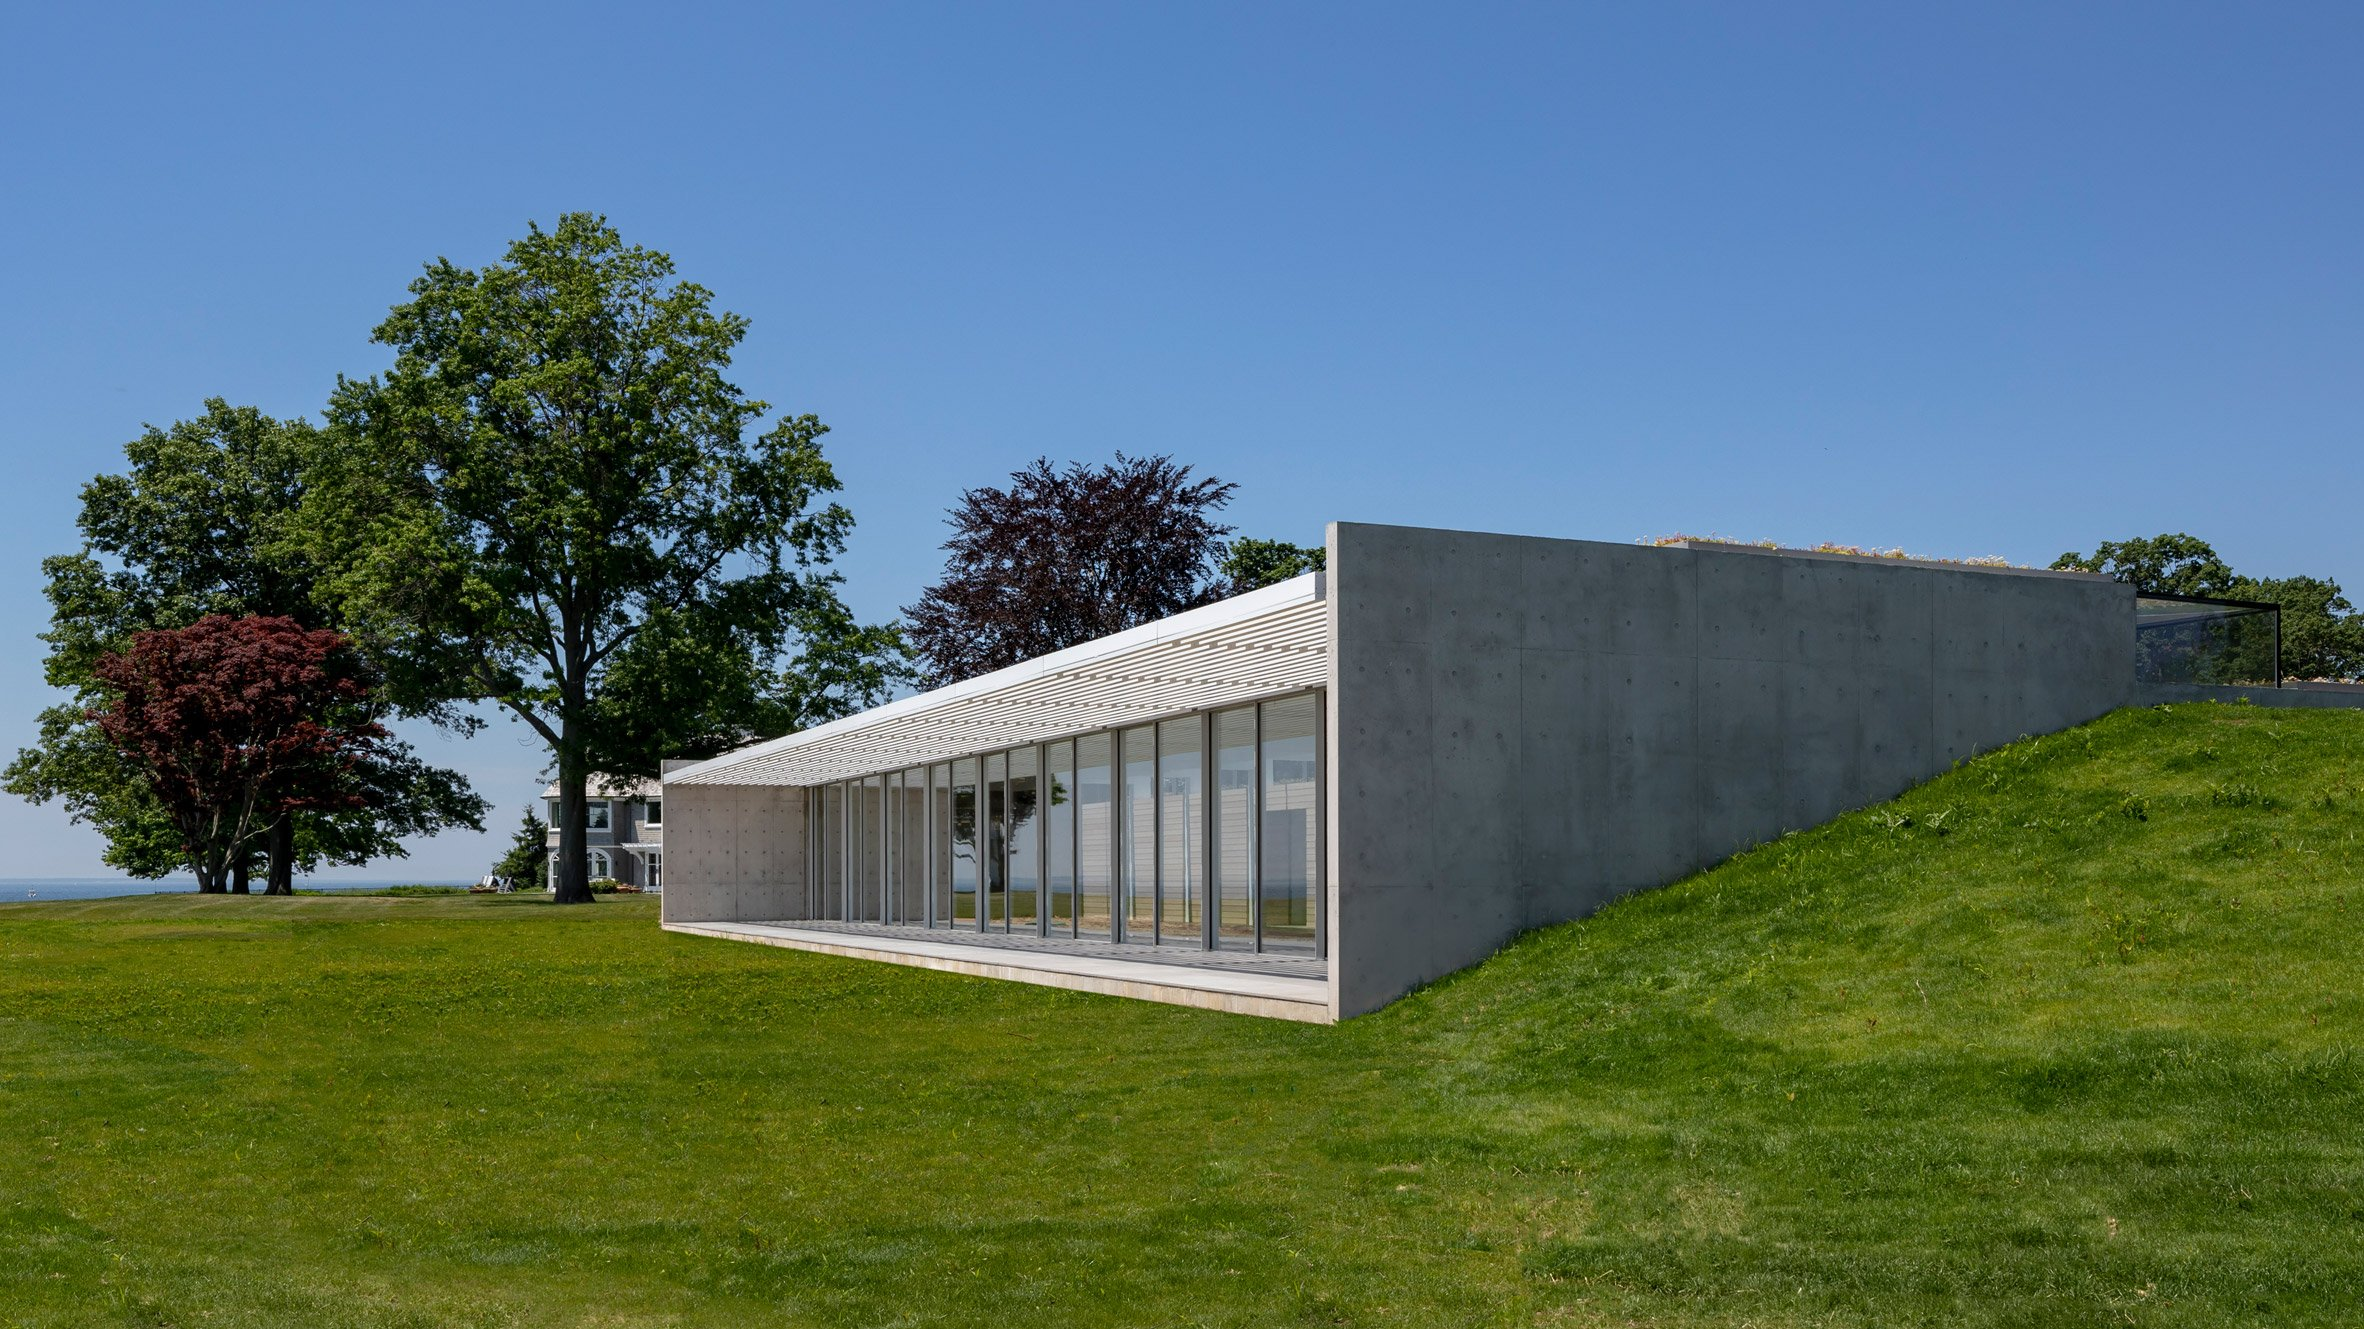 Pool House by Roger Ferris + Partners